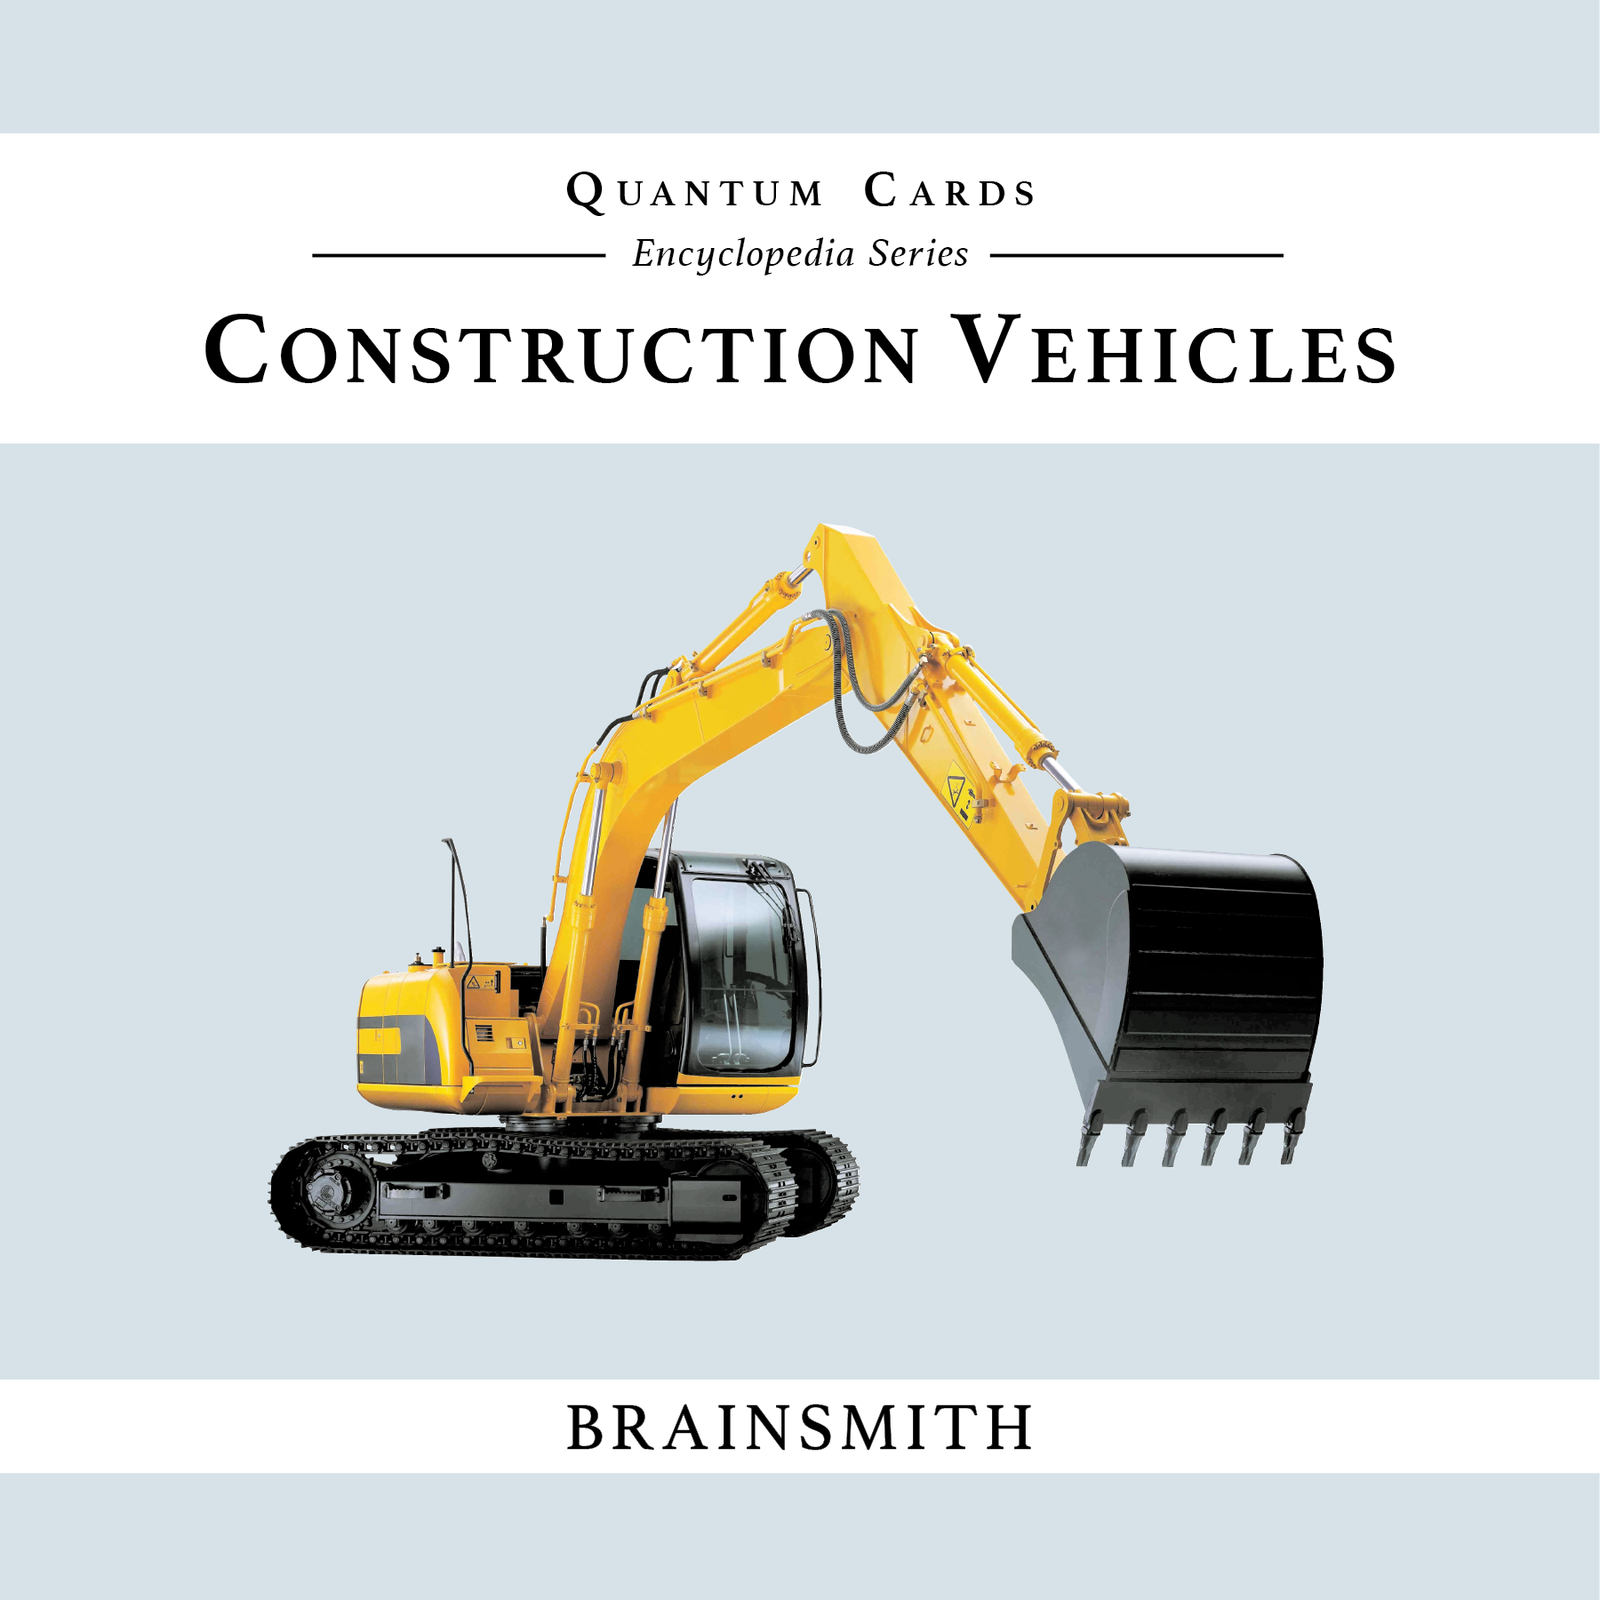 Construction Vehicles Flashcards for kids